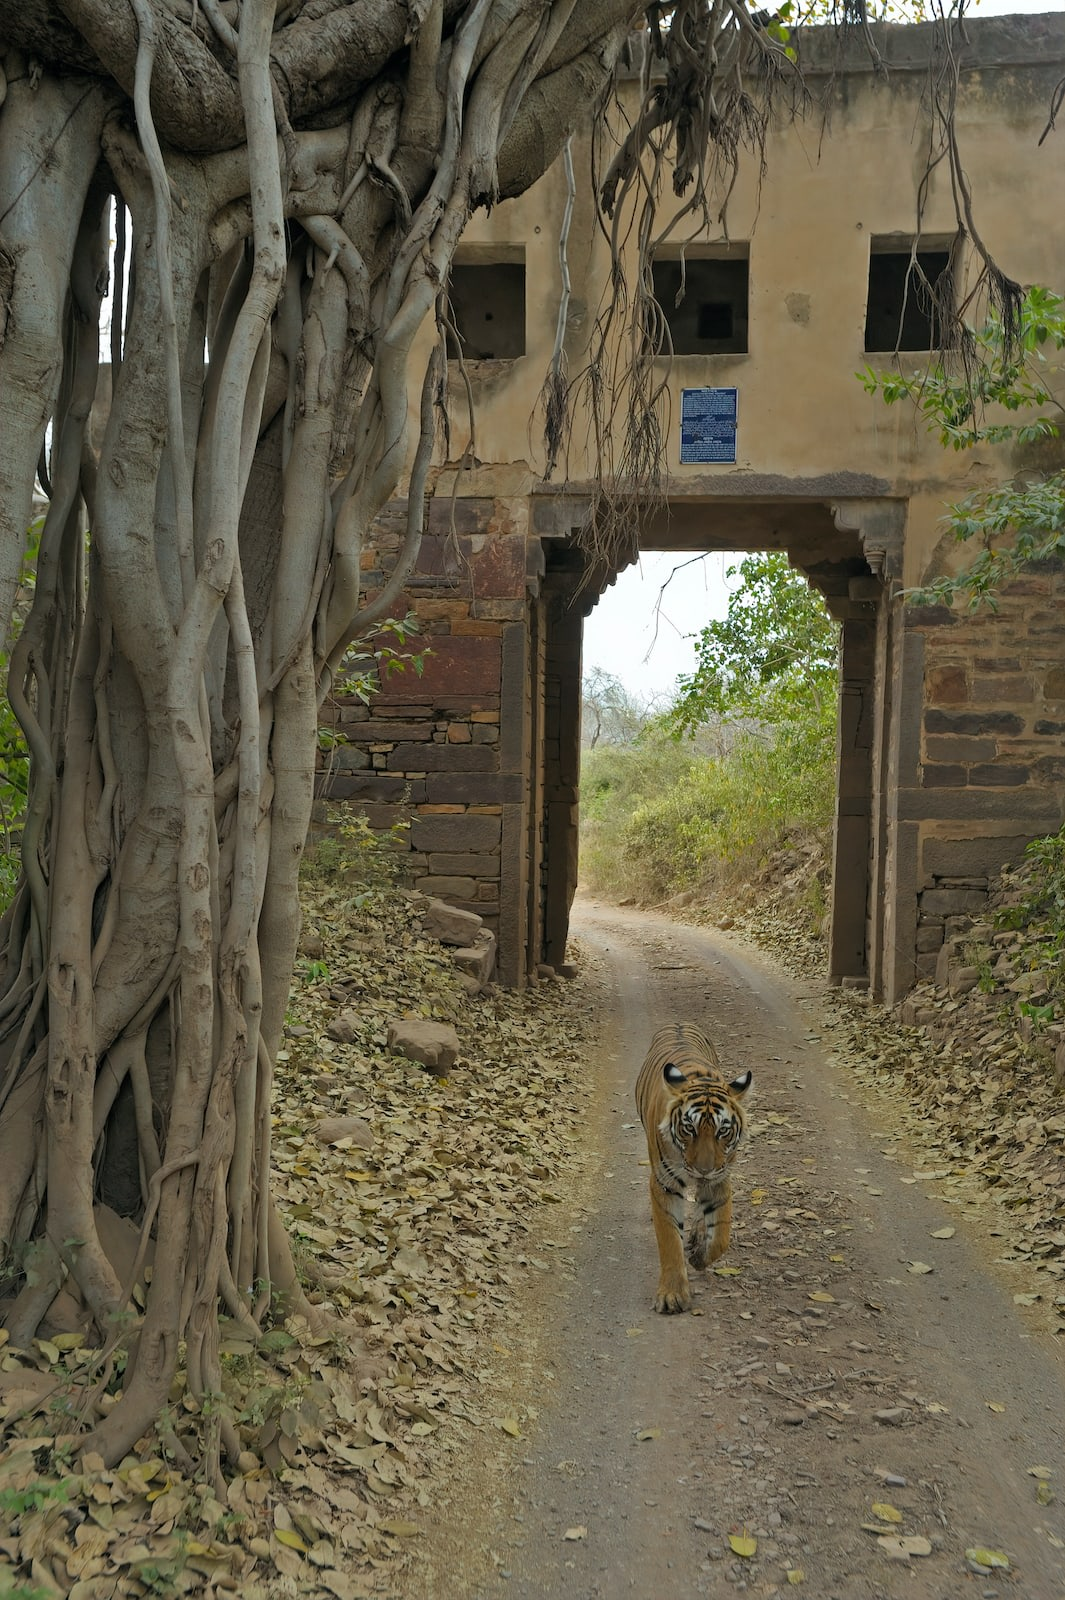 """The """"bada gate"""" or the big gate is a gateway with a long stretch of walls on either side of the gate, a few hundred meters inside the Jogi Mahal entrance to the national park, along the shores of the Padam Talao lake. Since the wall on either side of this gate is still largely intact, wild animals use this gate a lot, when they need to get across this walled barrier. There is room on top of the gate with three windows. A spiral staircase leads up to this room. Strong winds blowing from over the lake keep this room cool and in summers we sometimes find tigers resting in this room. Many decades ago, before the present gate was built, this was the main entrance to the national park."""